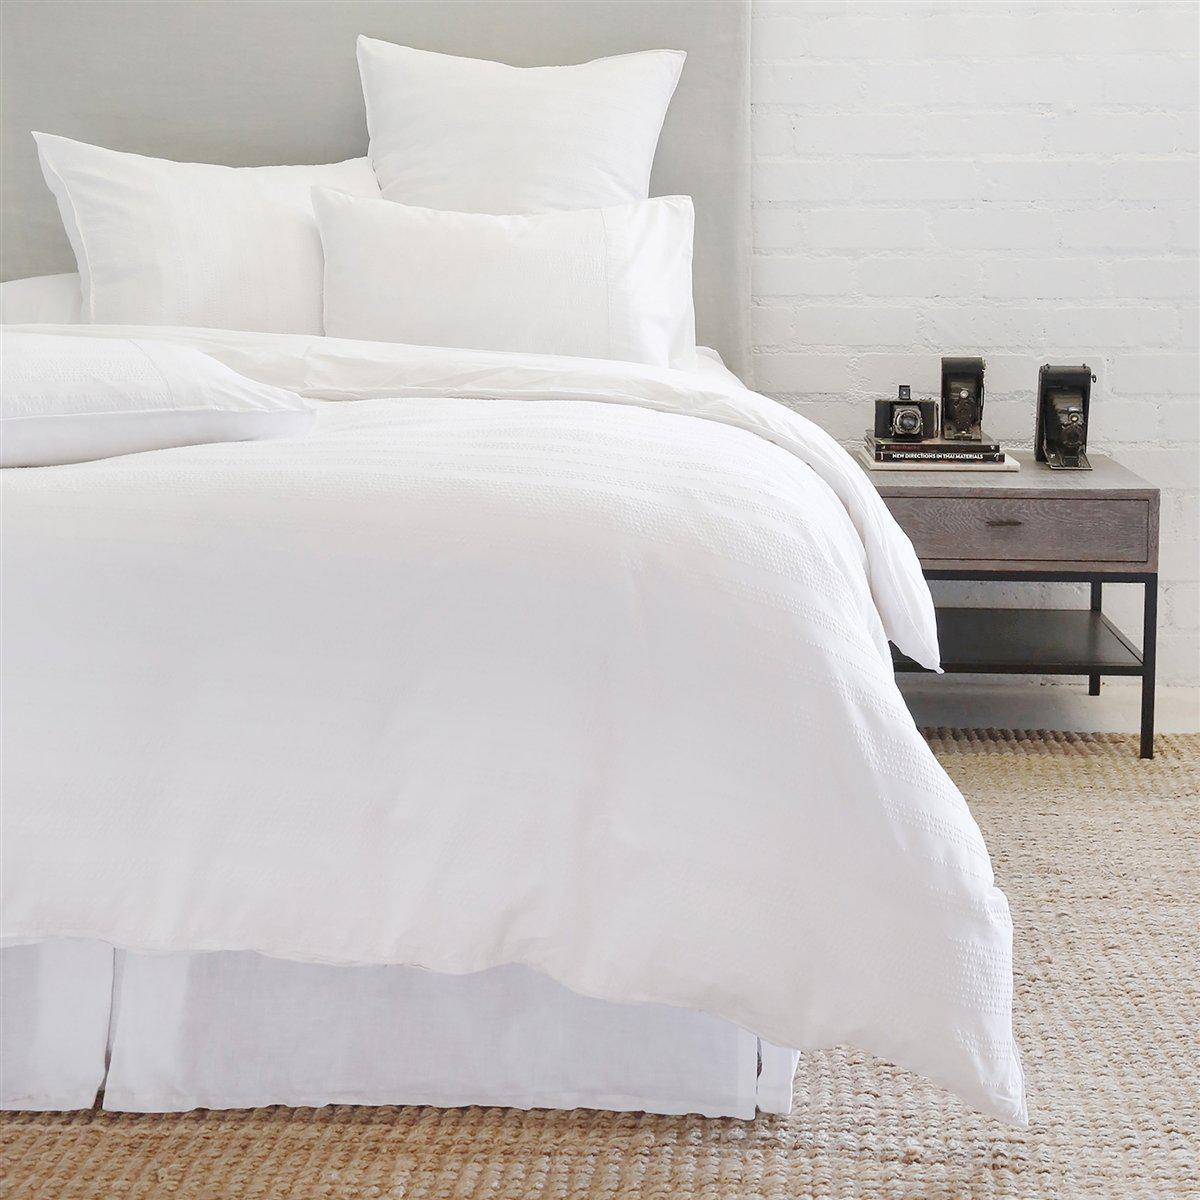 Quinn Duvet by Pom Pom at Home-Bed & Bath-Pom Pom-Queen-White-A Cottage in the City